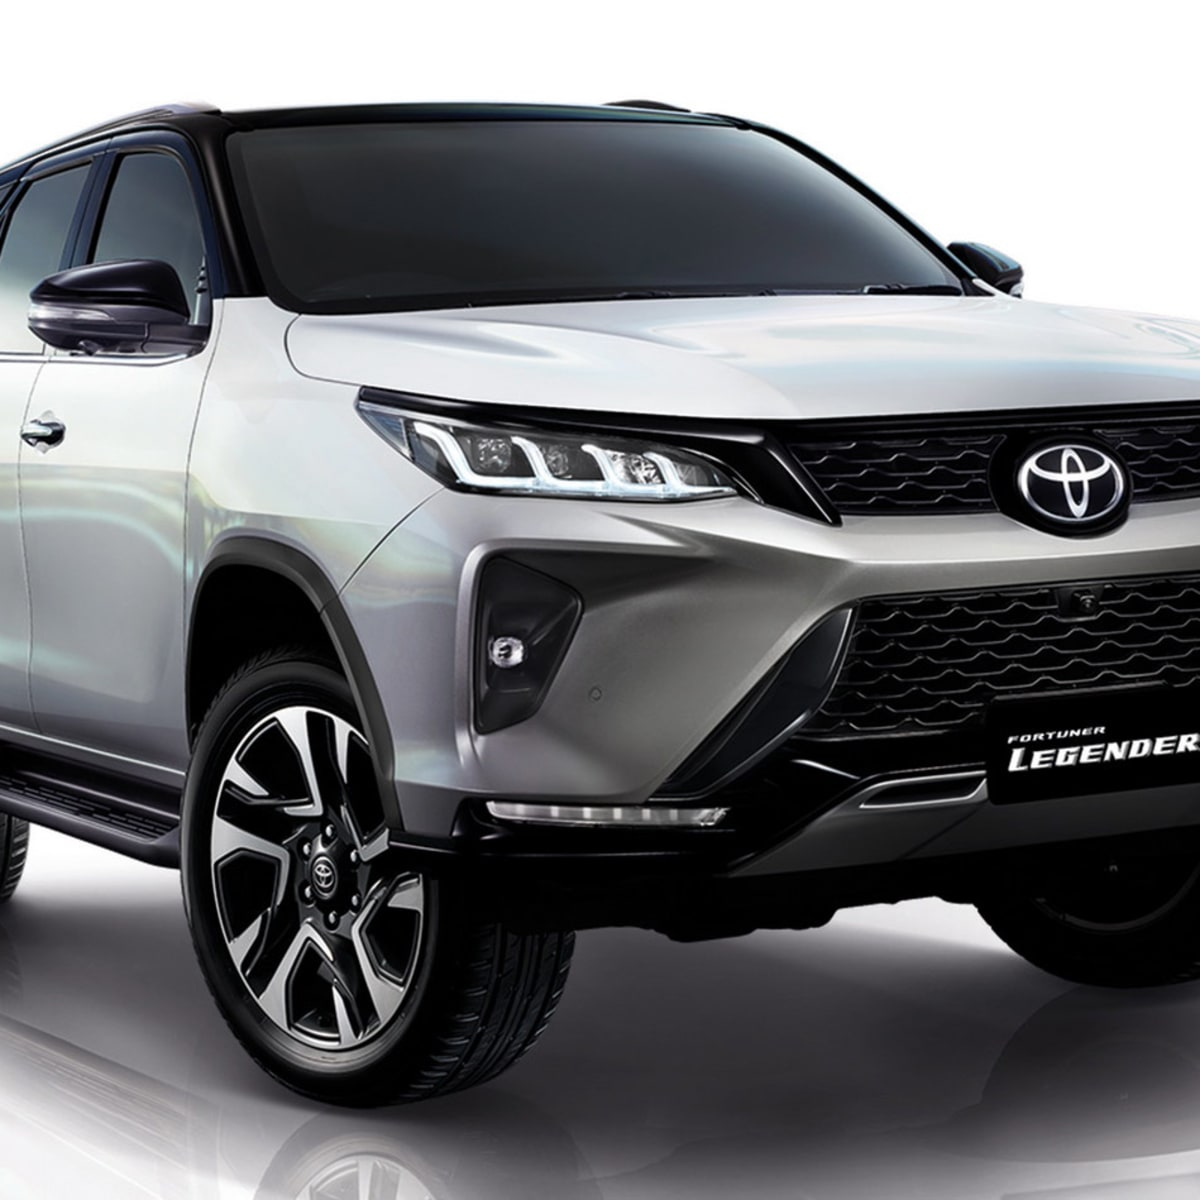 New 4 Toyota Fortuner gets a makeover and more power, due in